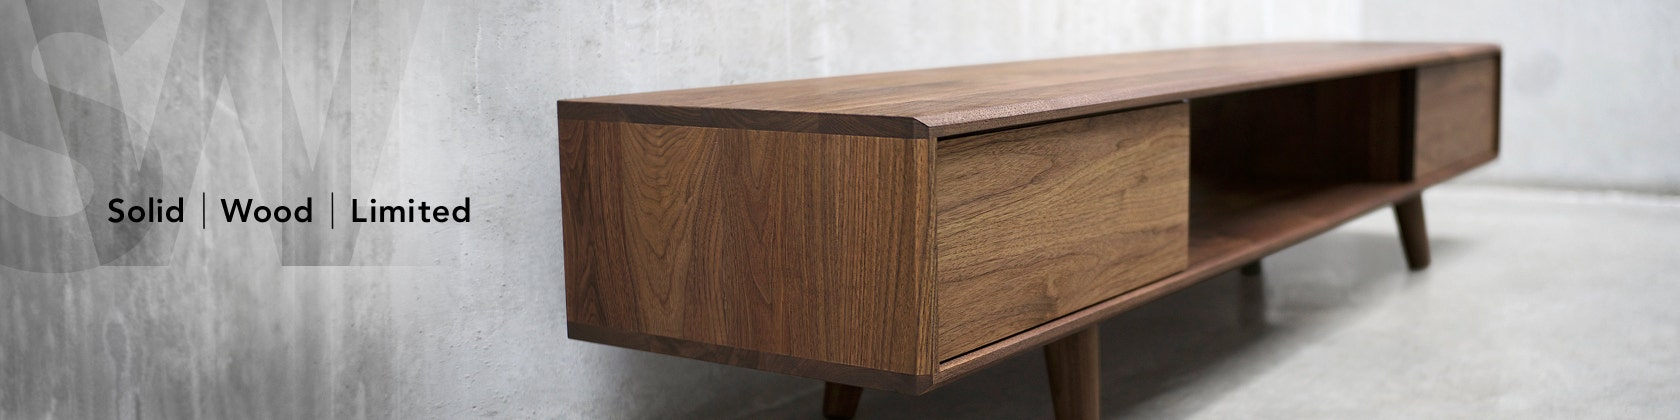 Modern Furniture Built With Only The Best by solidwoodlimited